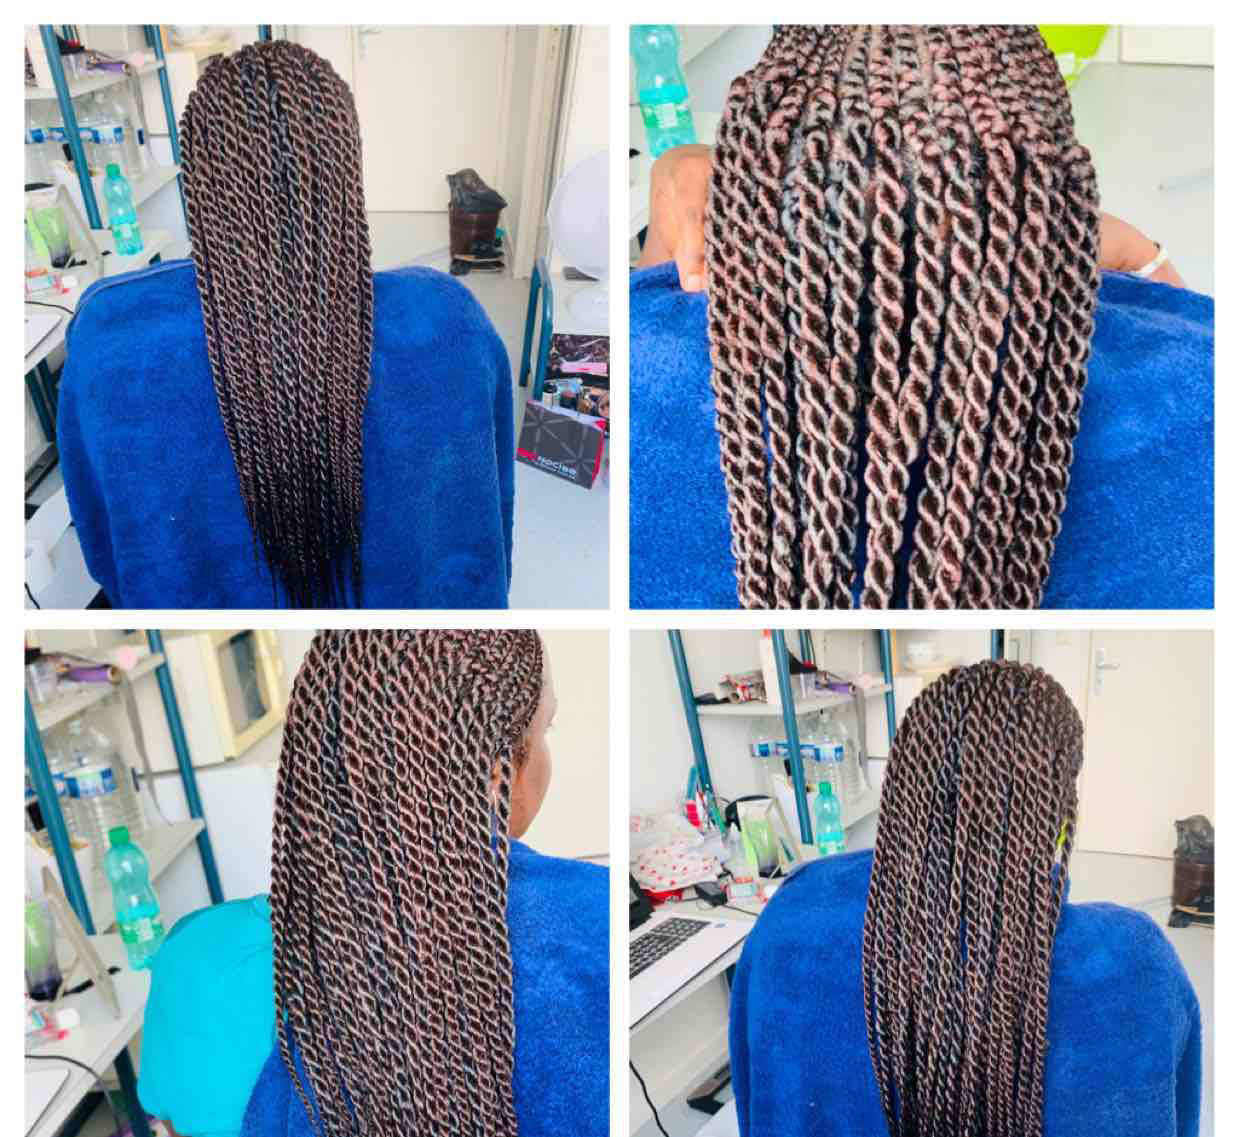 salon de coiffure afro tresse tresses box braids crochet braids vanilles tissages paris 75 77 78 91 92 93 94 95 MFMFBTSL